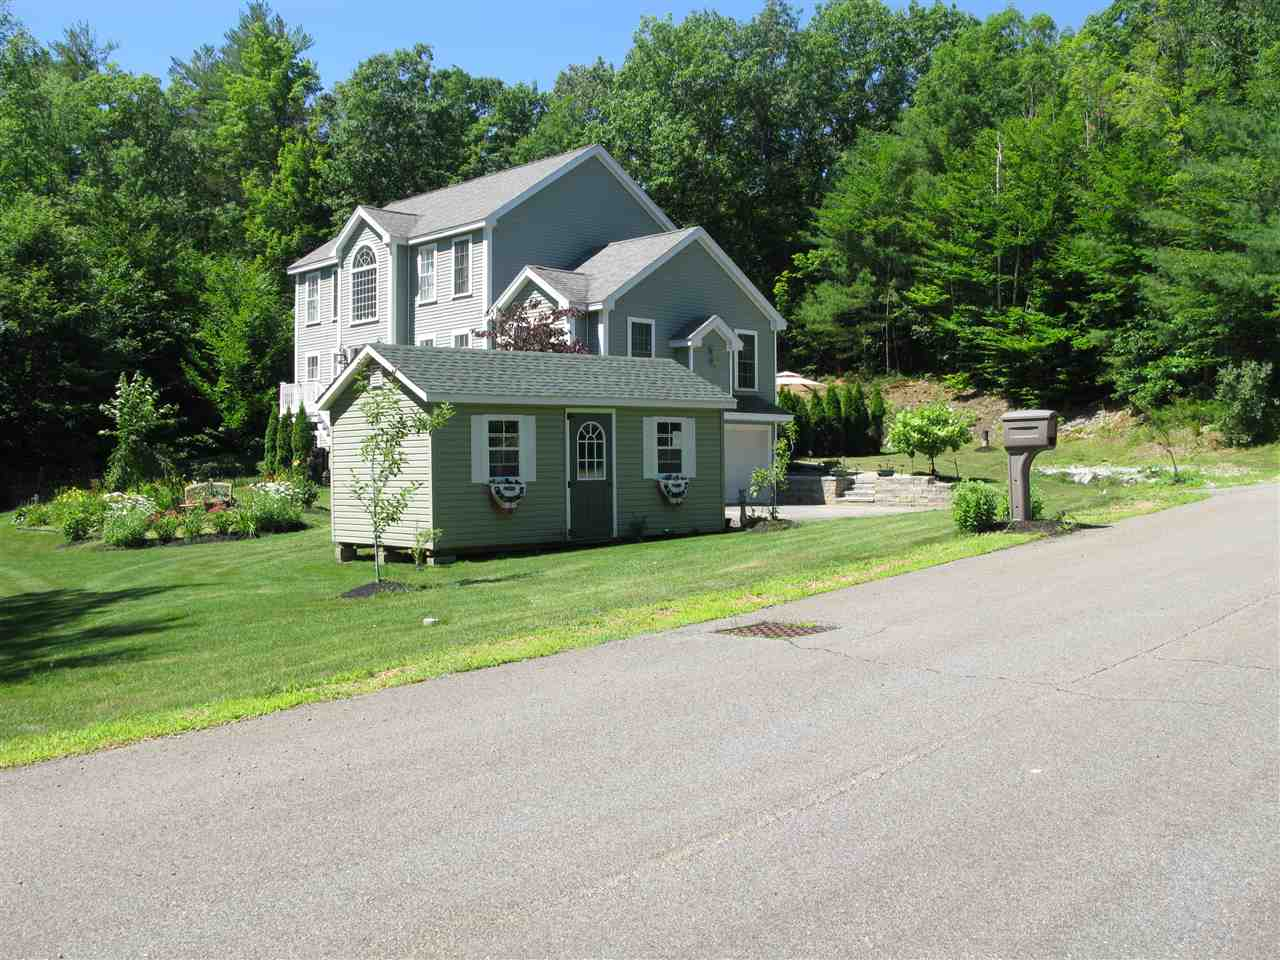 MLS 4707581: 36 Marcia Ann Way, Laconia NH